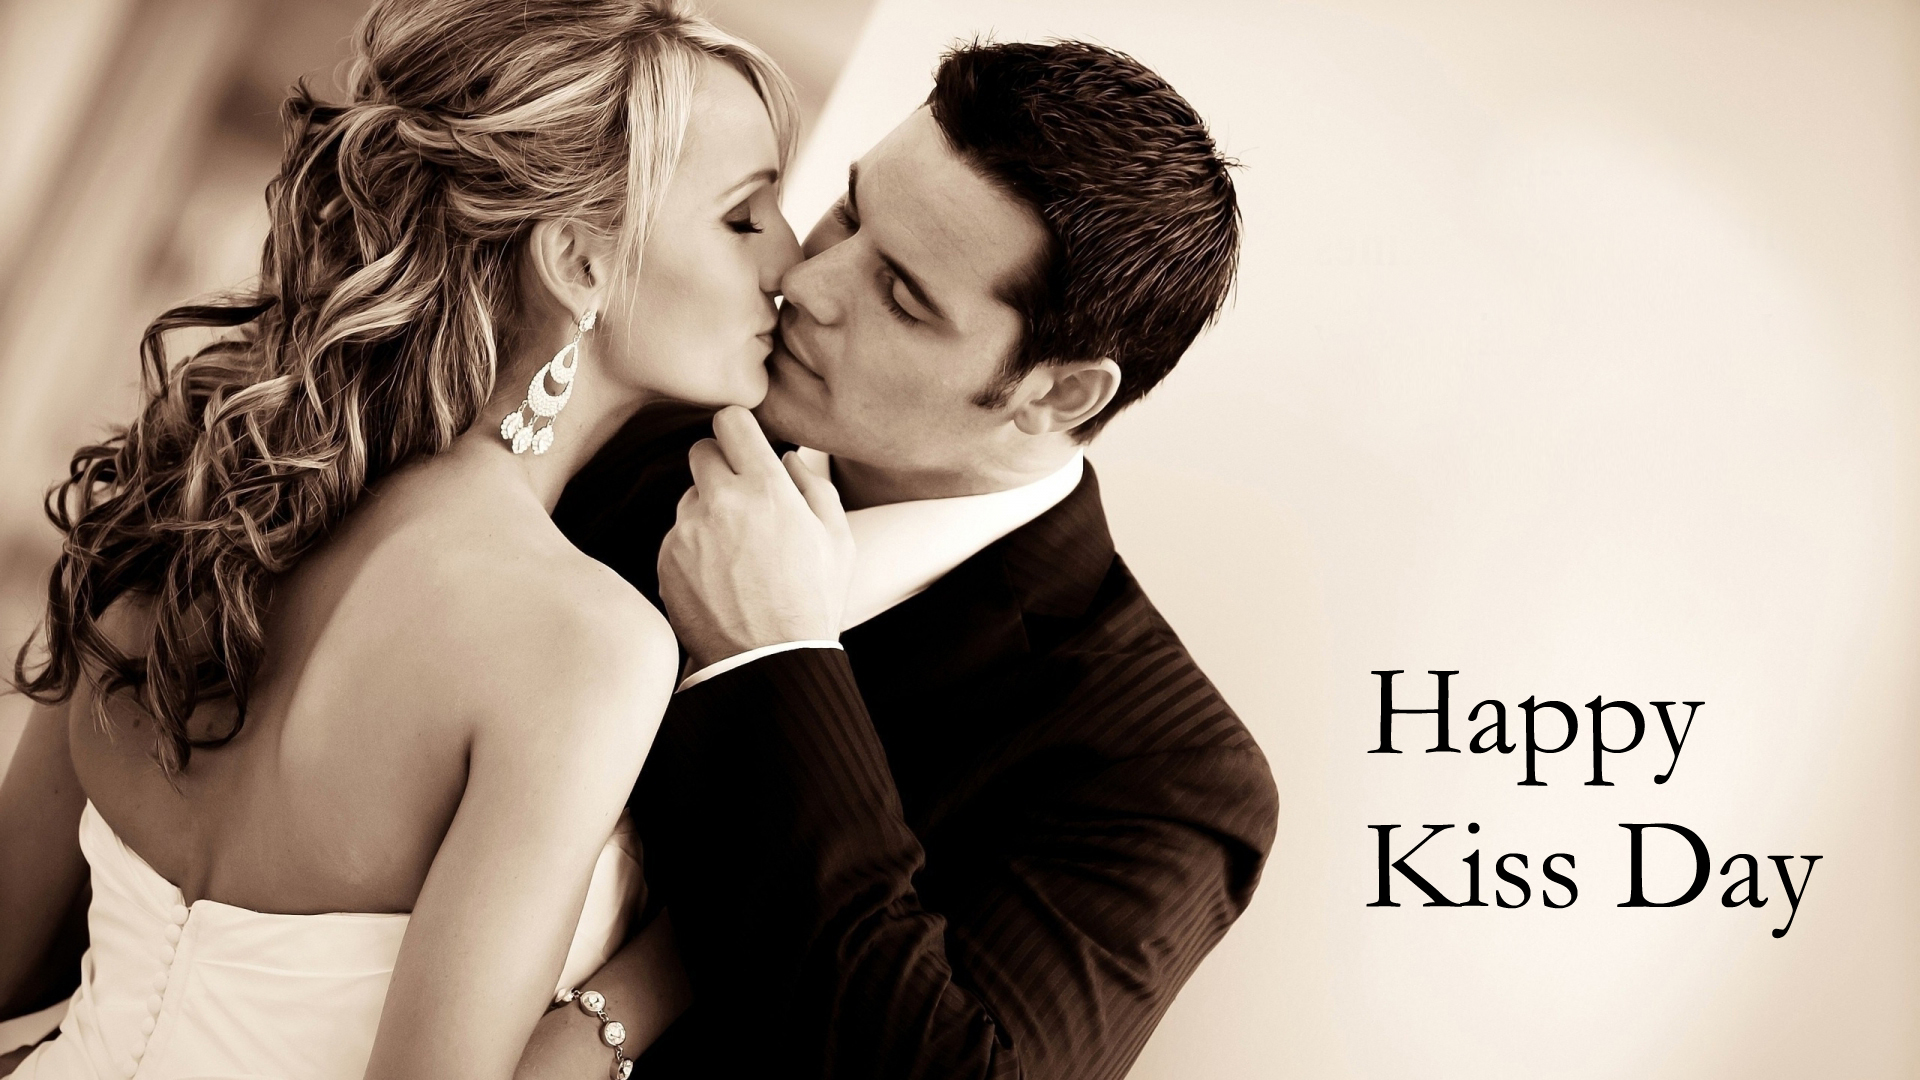 Cute-Kissing-Couple-Wishes-Happy-Kiss-Dayromantic-kiss-day-greting-kiss-day-wallpaperskiss-day-wishes-1